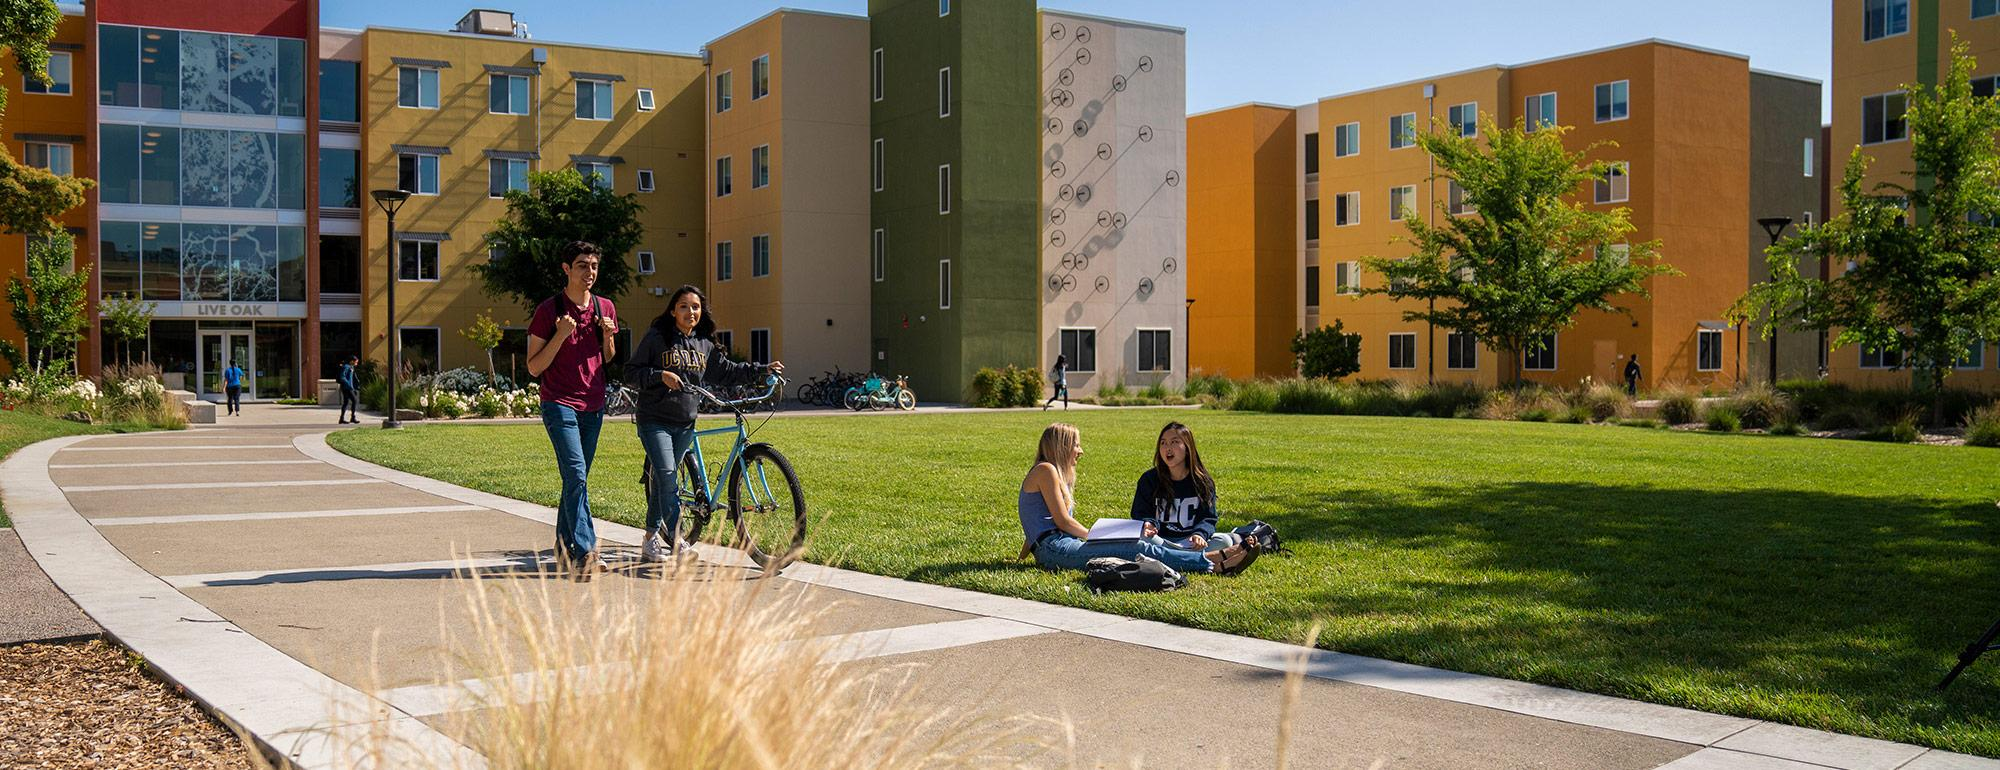 two student walking a bike while two more students are sitting on the grass in front of the residence halls